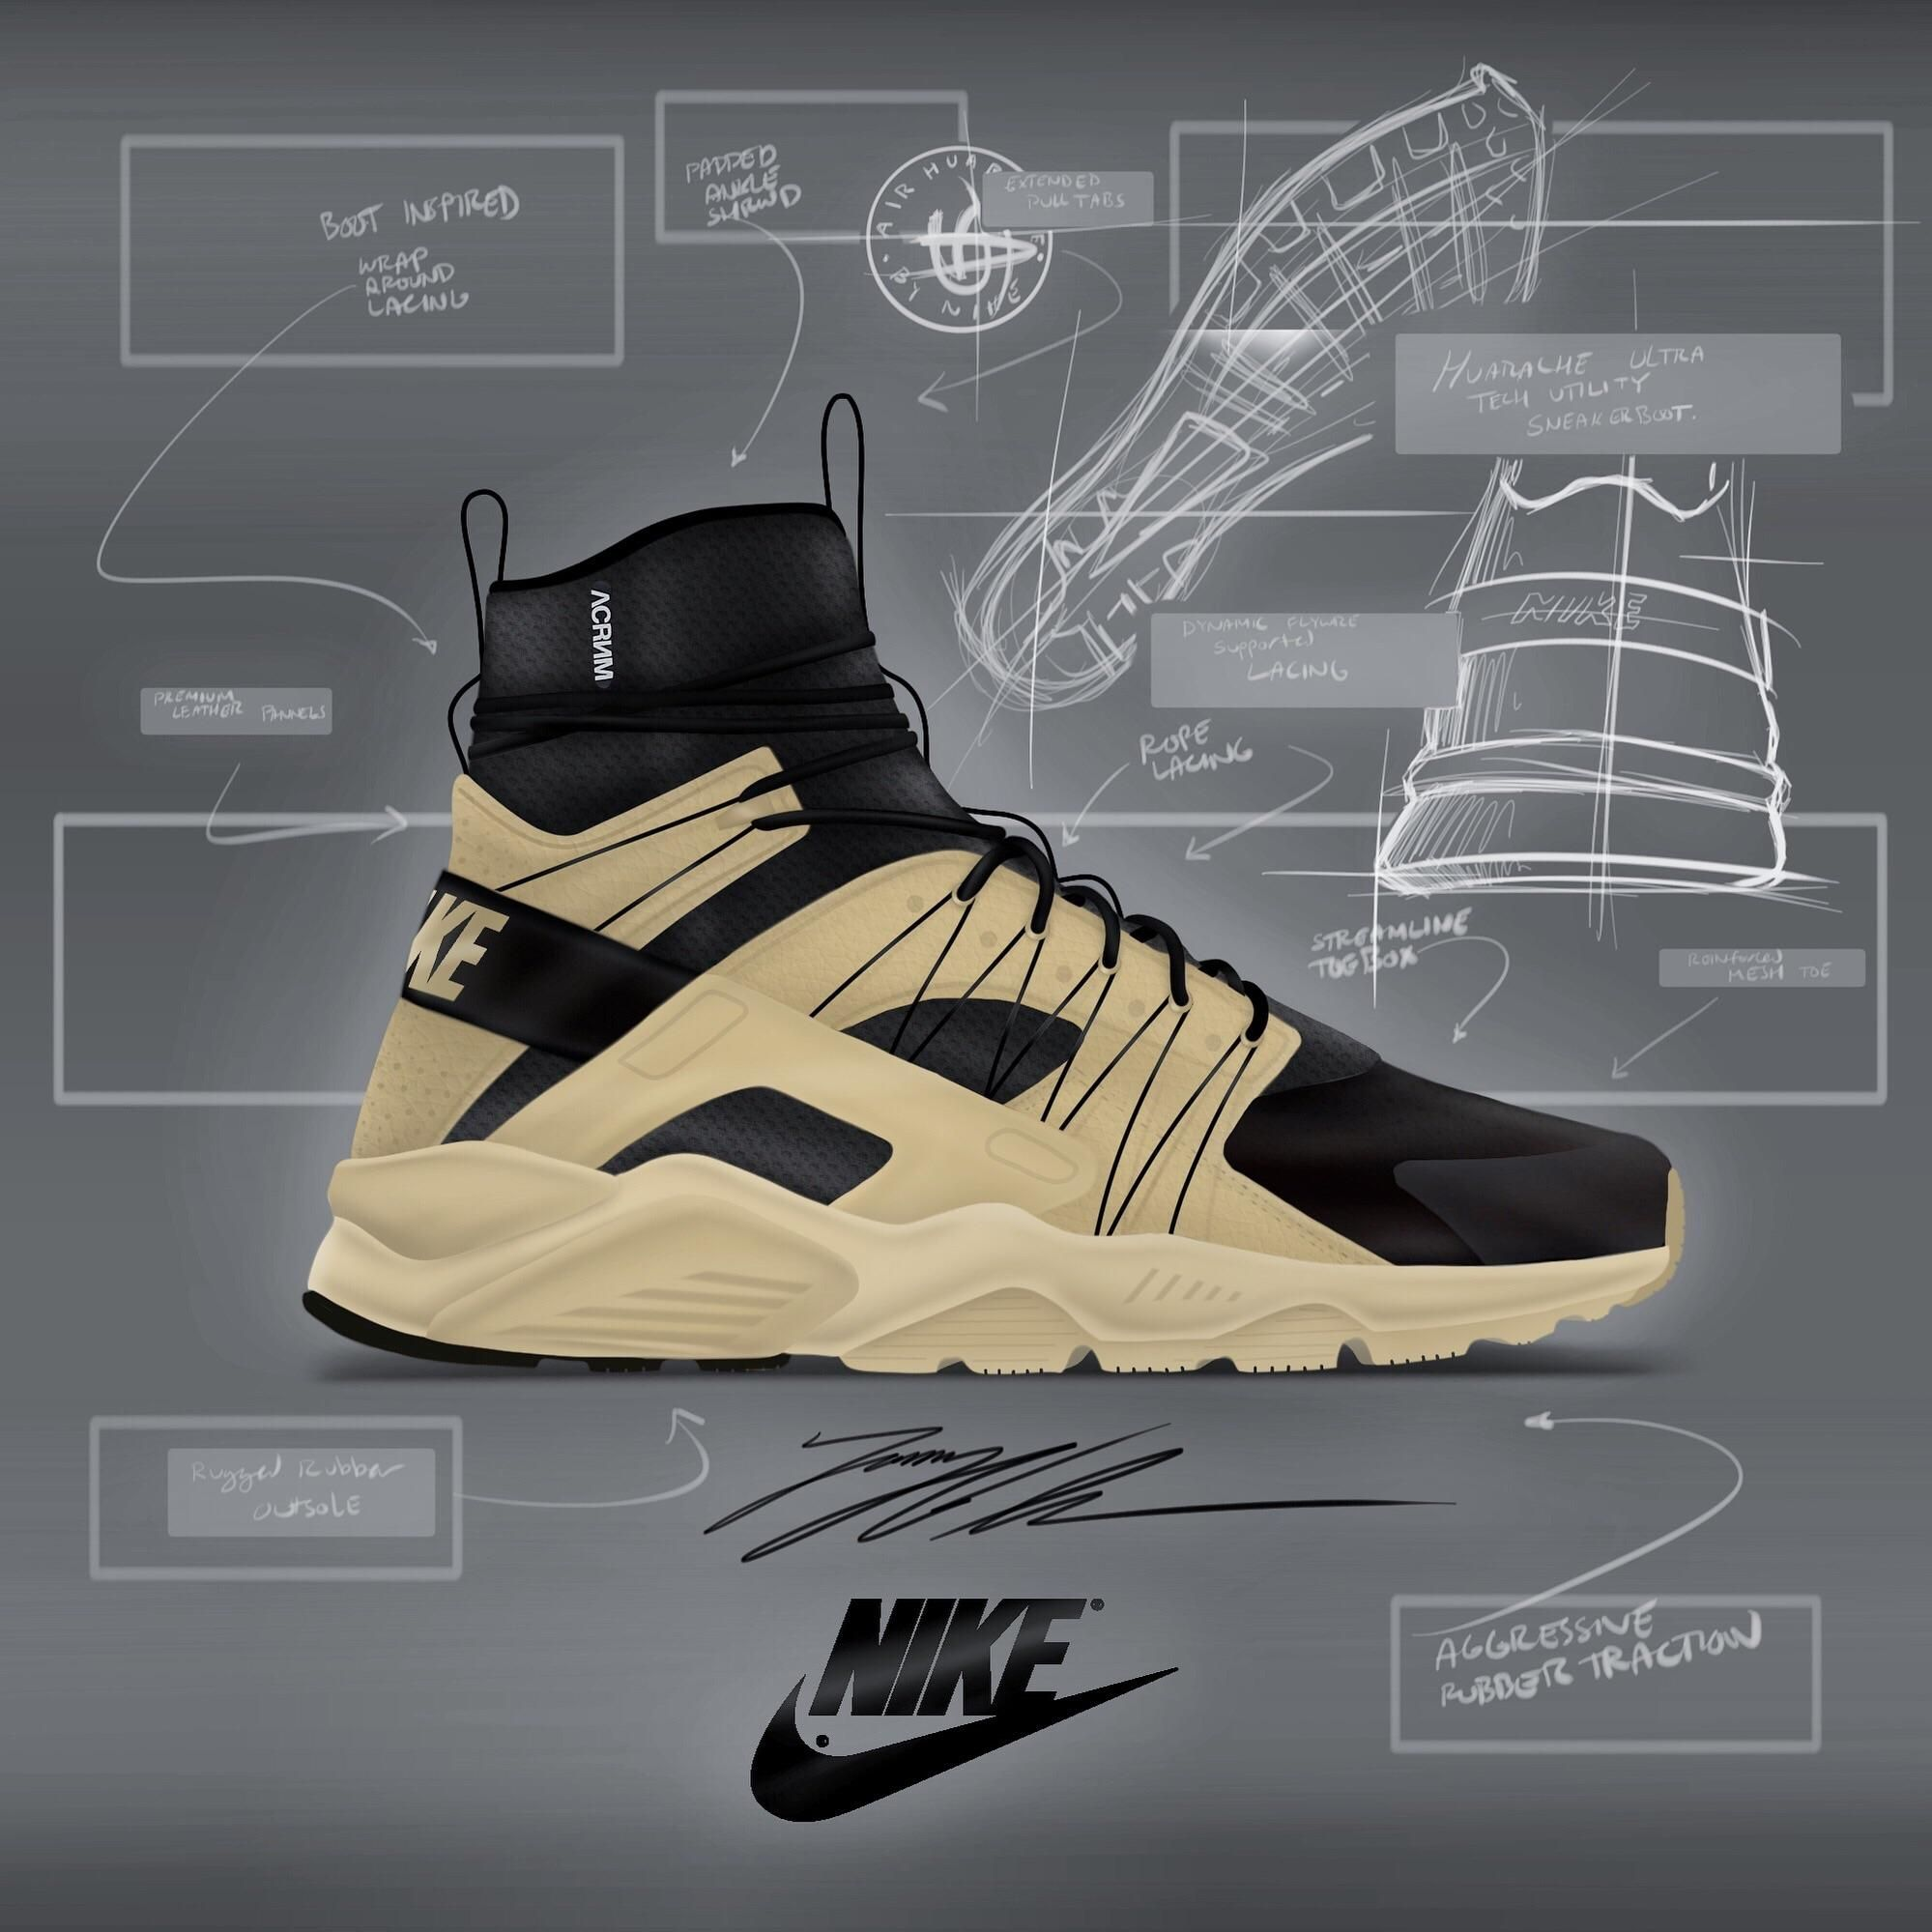 Nike Huarache ACRONYM Bamboo concept- Im an aspiring footwear designer I  thought it might be cool to show some of my work on here. 76a278d8026b